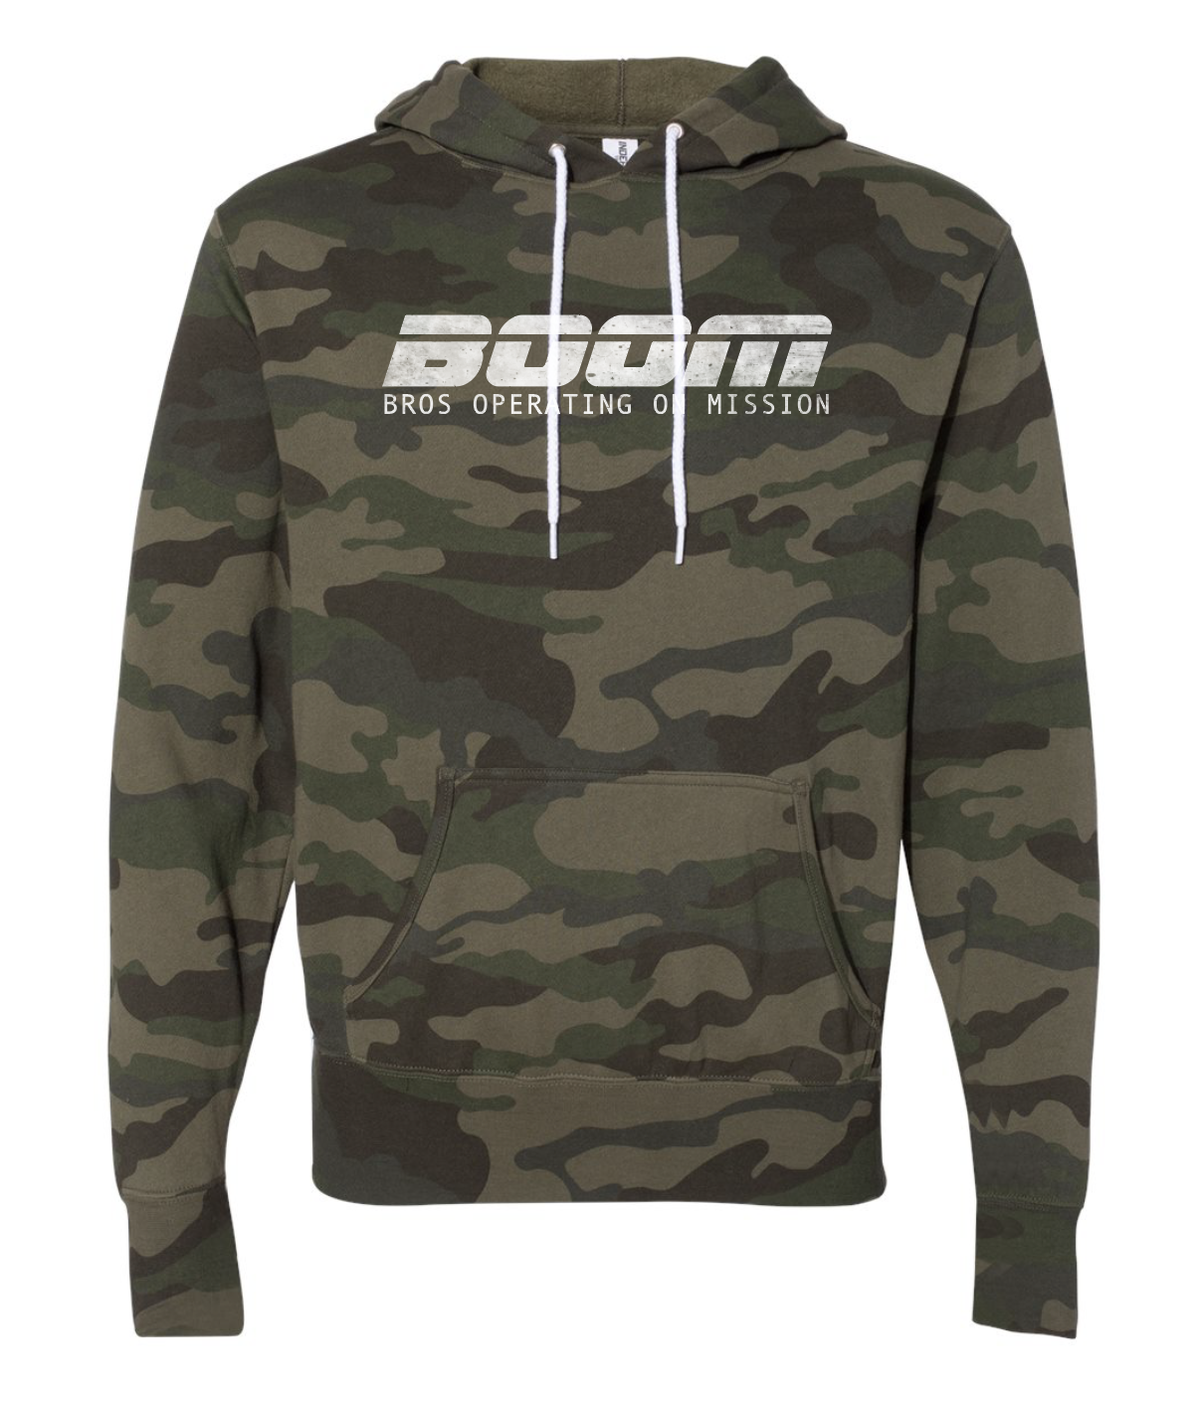 Image of Bros Camo Hoodie